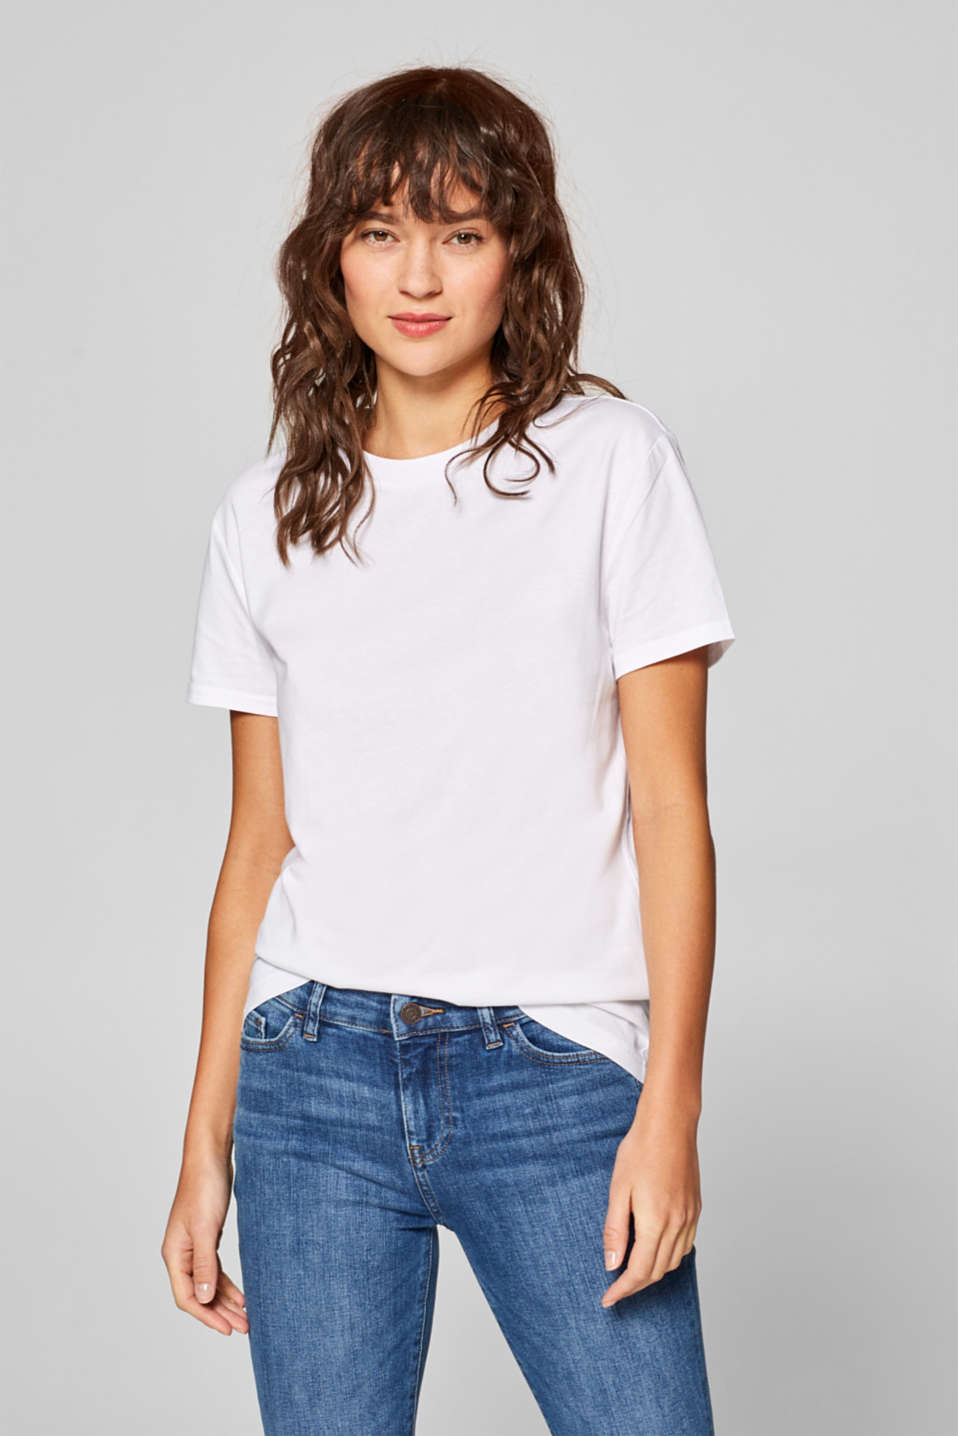 Esprit - T-shirt in basic look, 100% katoen